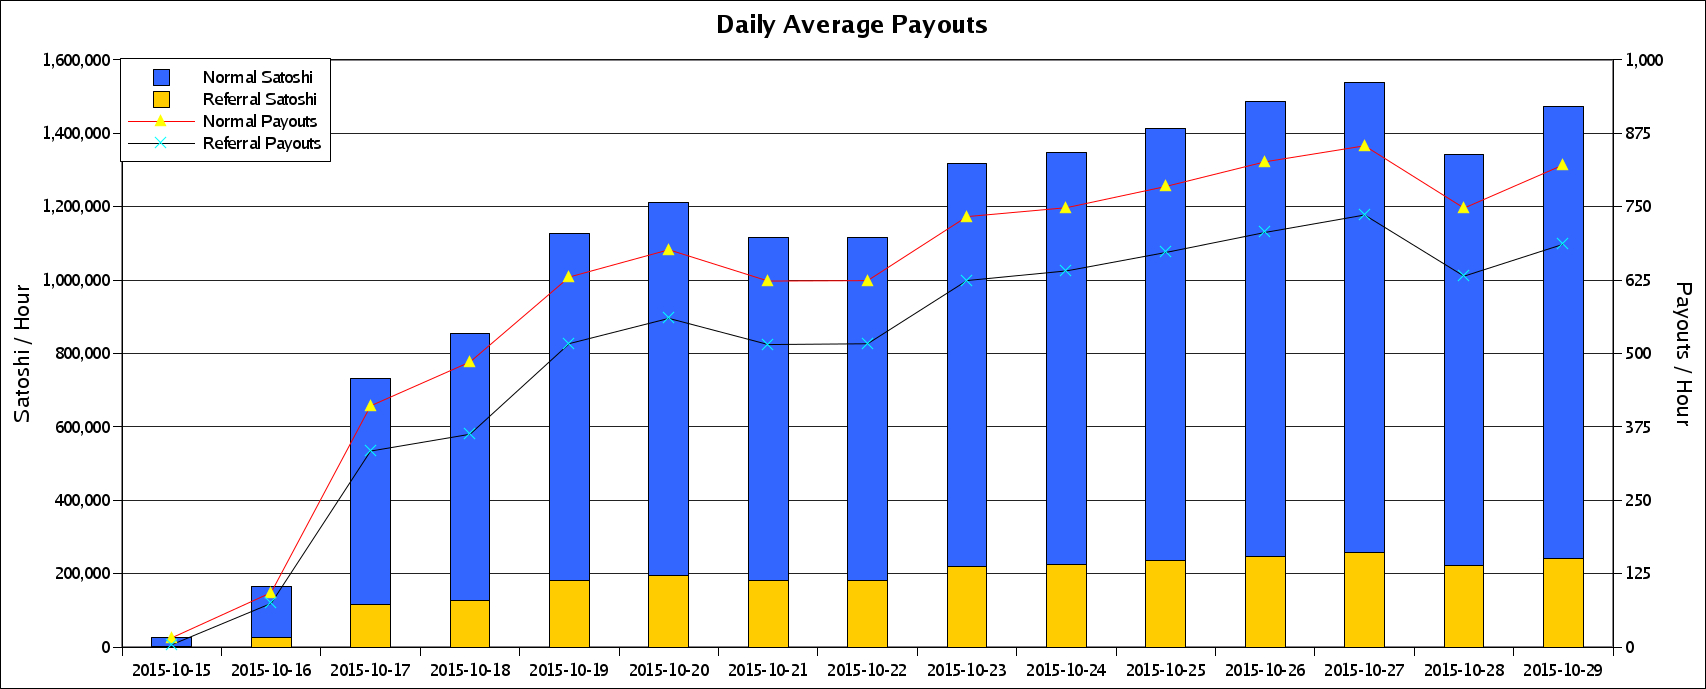 Daily Average Payouts